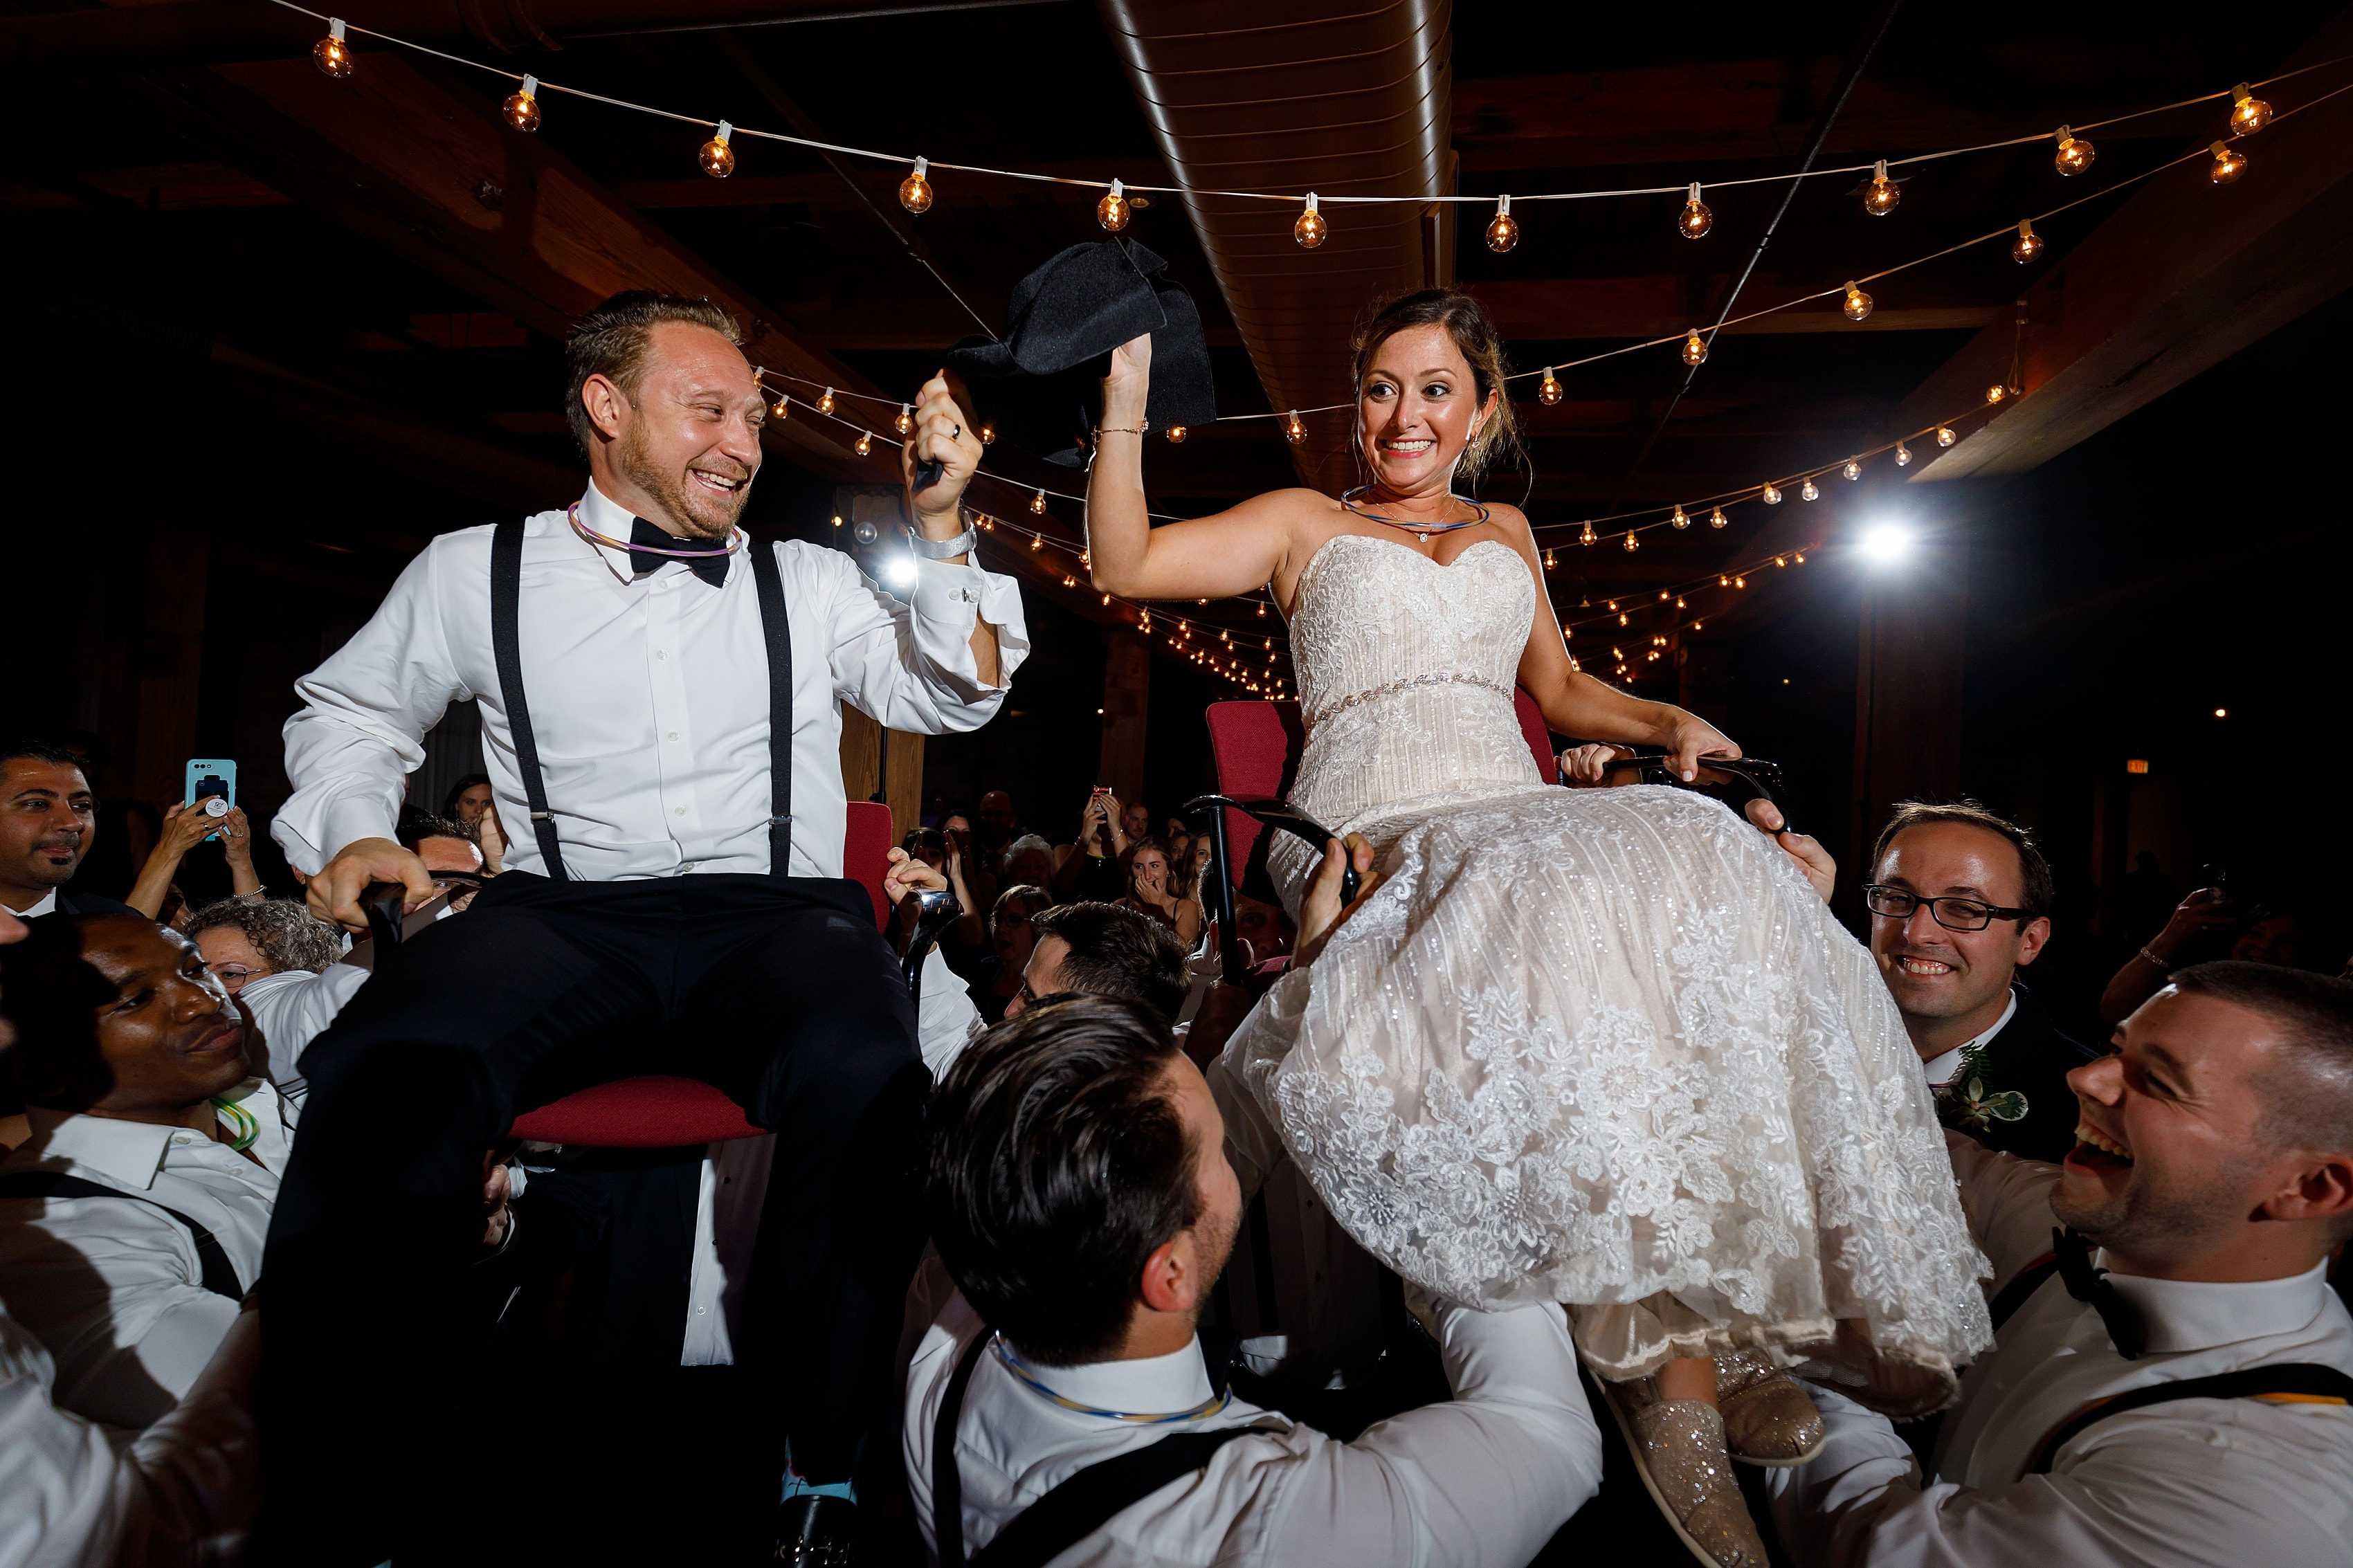 bride and groom are lifted onto chairs for the hora during wedding reception at Bridgeport Art Center Sculpture Garden in Chicago